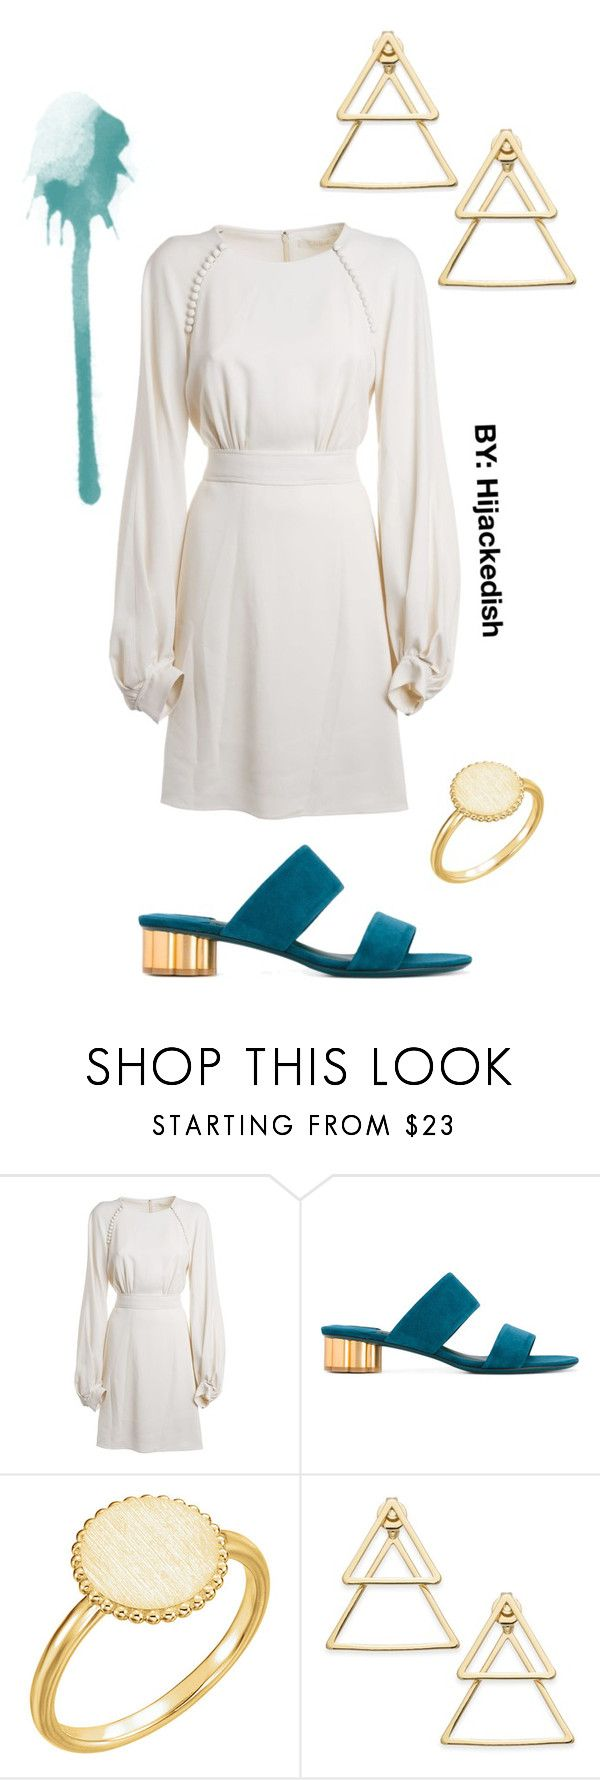 """Slightly angelic"" by hijackedish on Polyvore featuring Chloé, Salvatore Ferragamo and INC International Concepts"